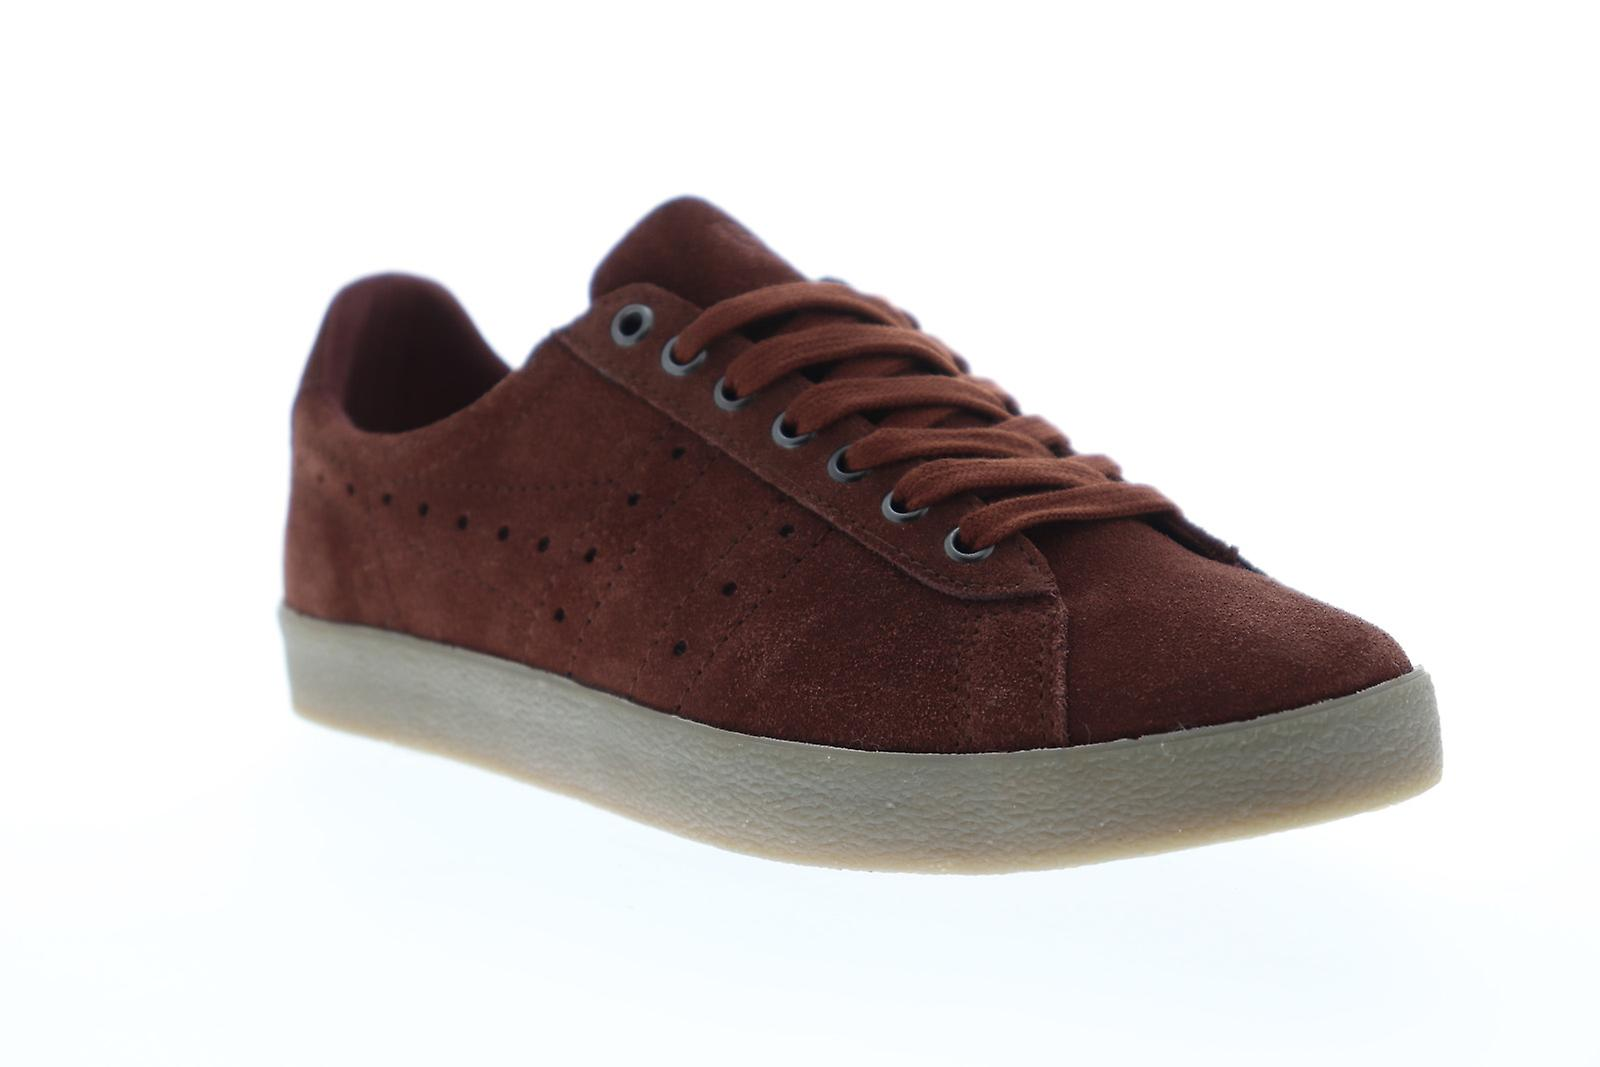 Gola Tourist Mens rouge Suede Low Top Lace Up baskets Chaussures